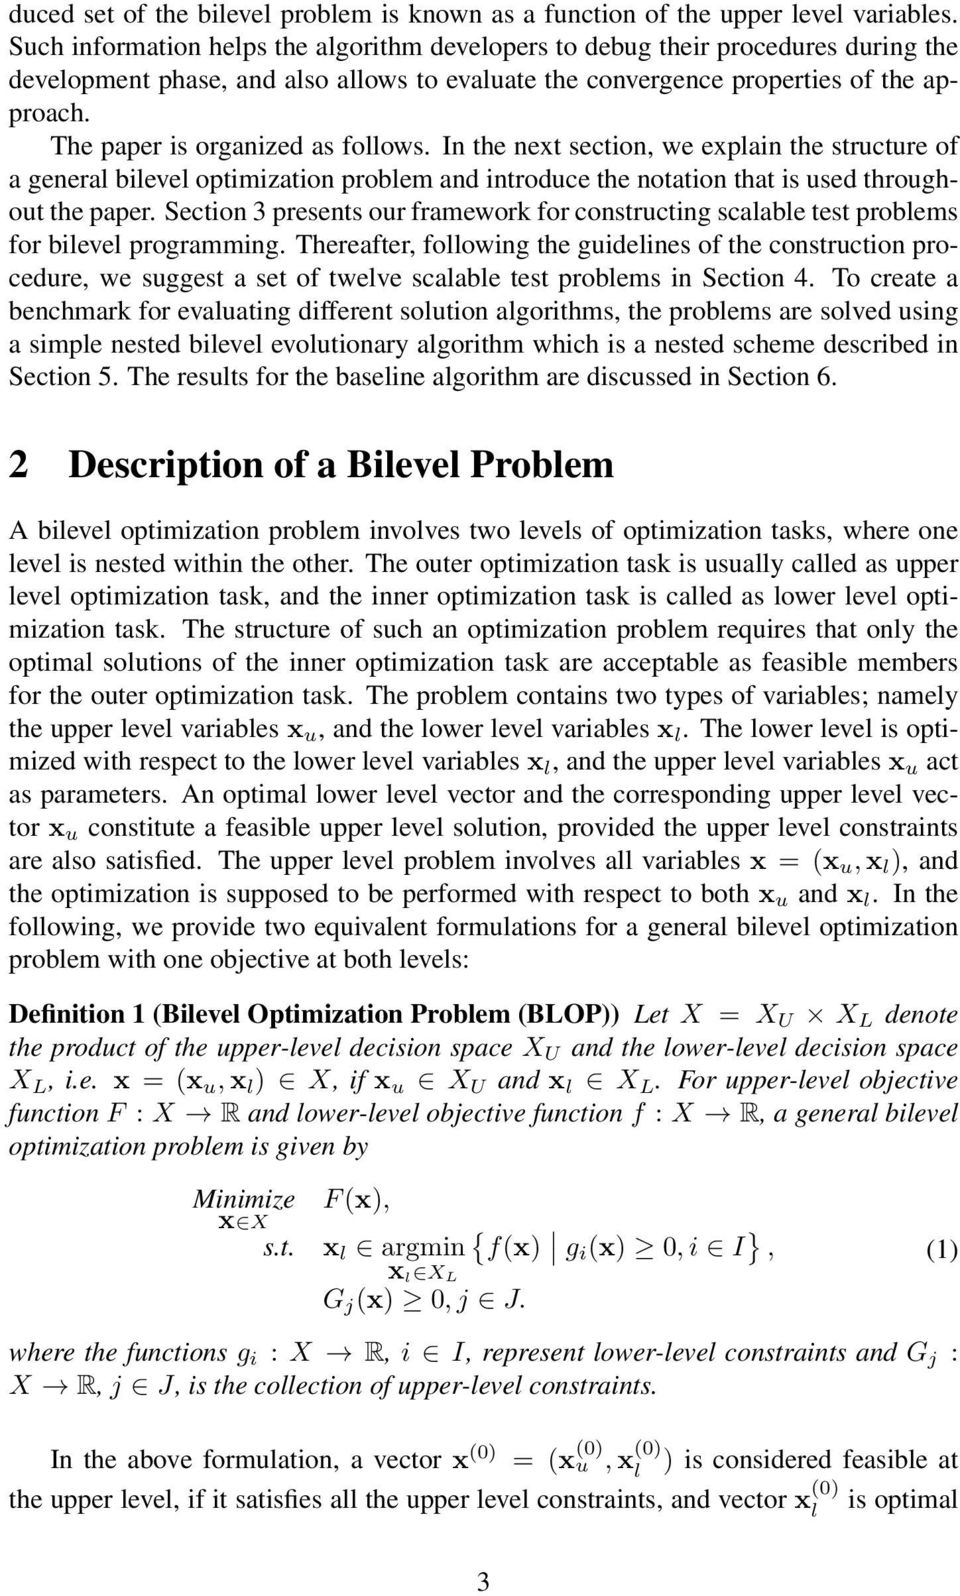 The paper is organized as follows. In the net section, we eplain the structure of a general bilevel optimization problem and introduce the notation that is used throughout the paper.